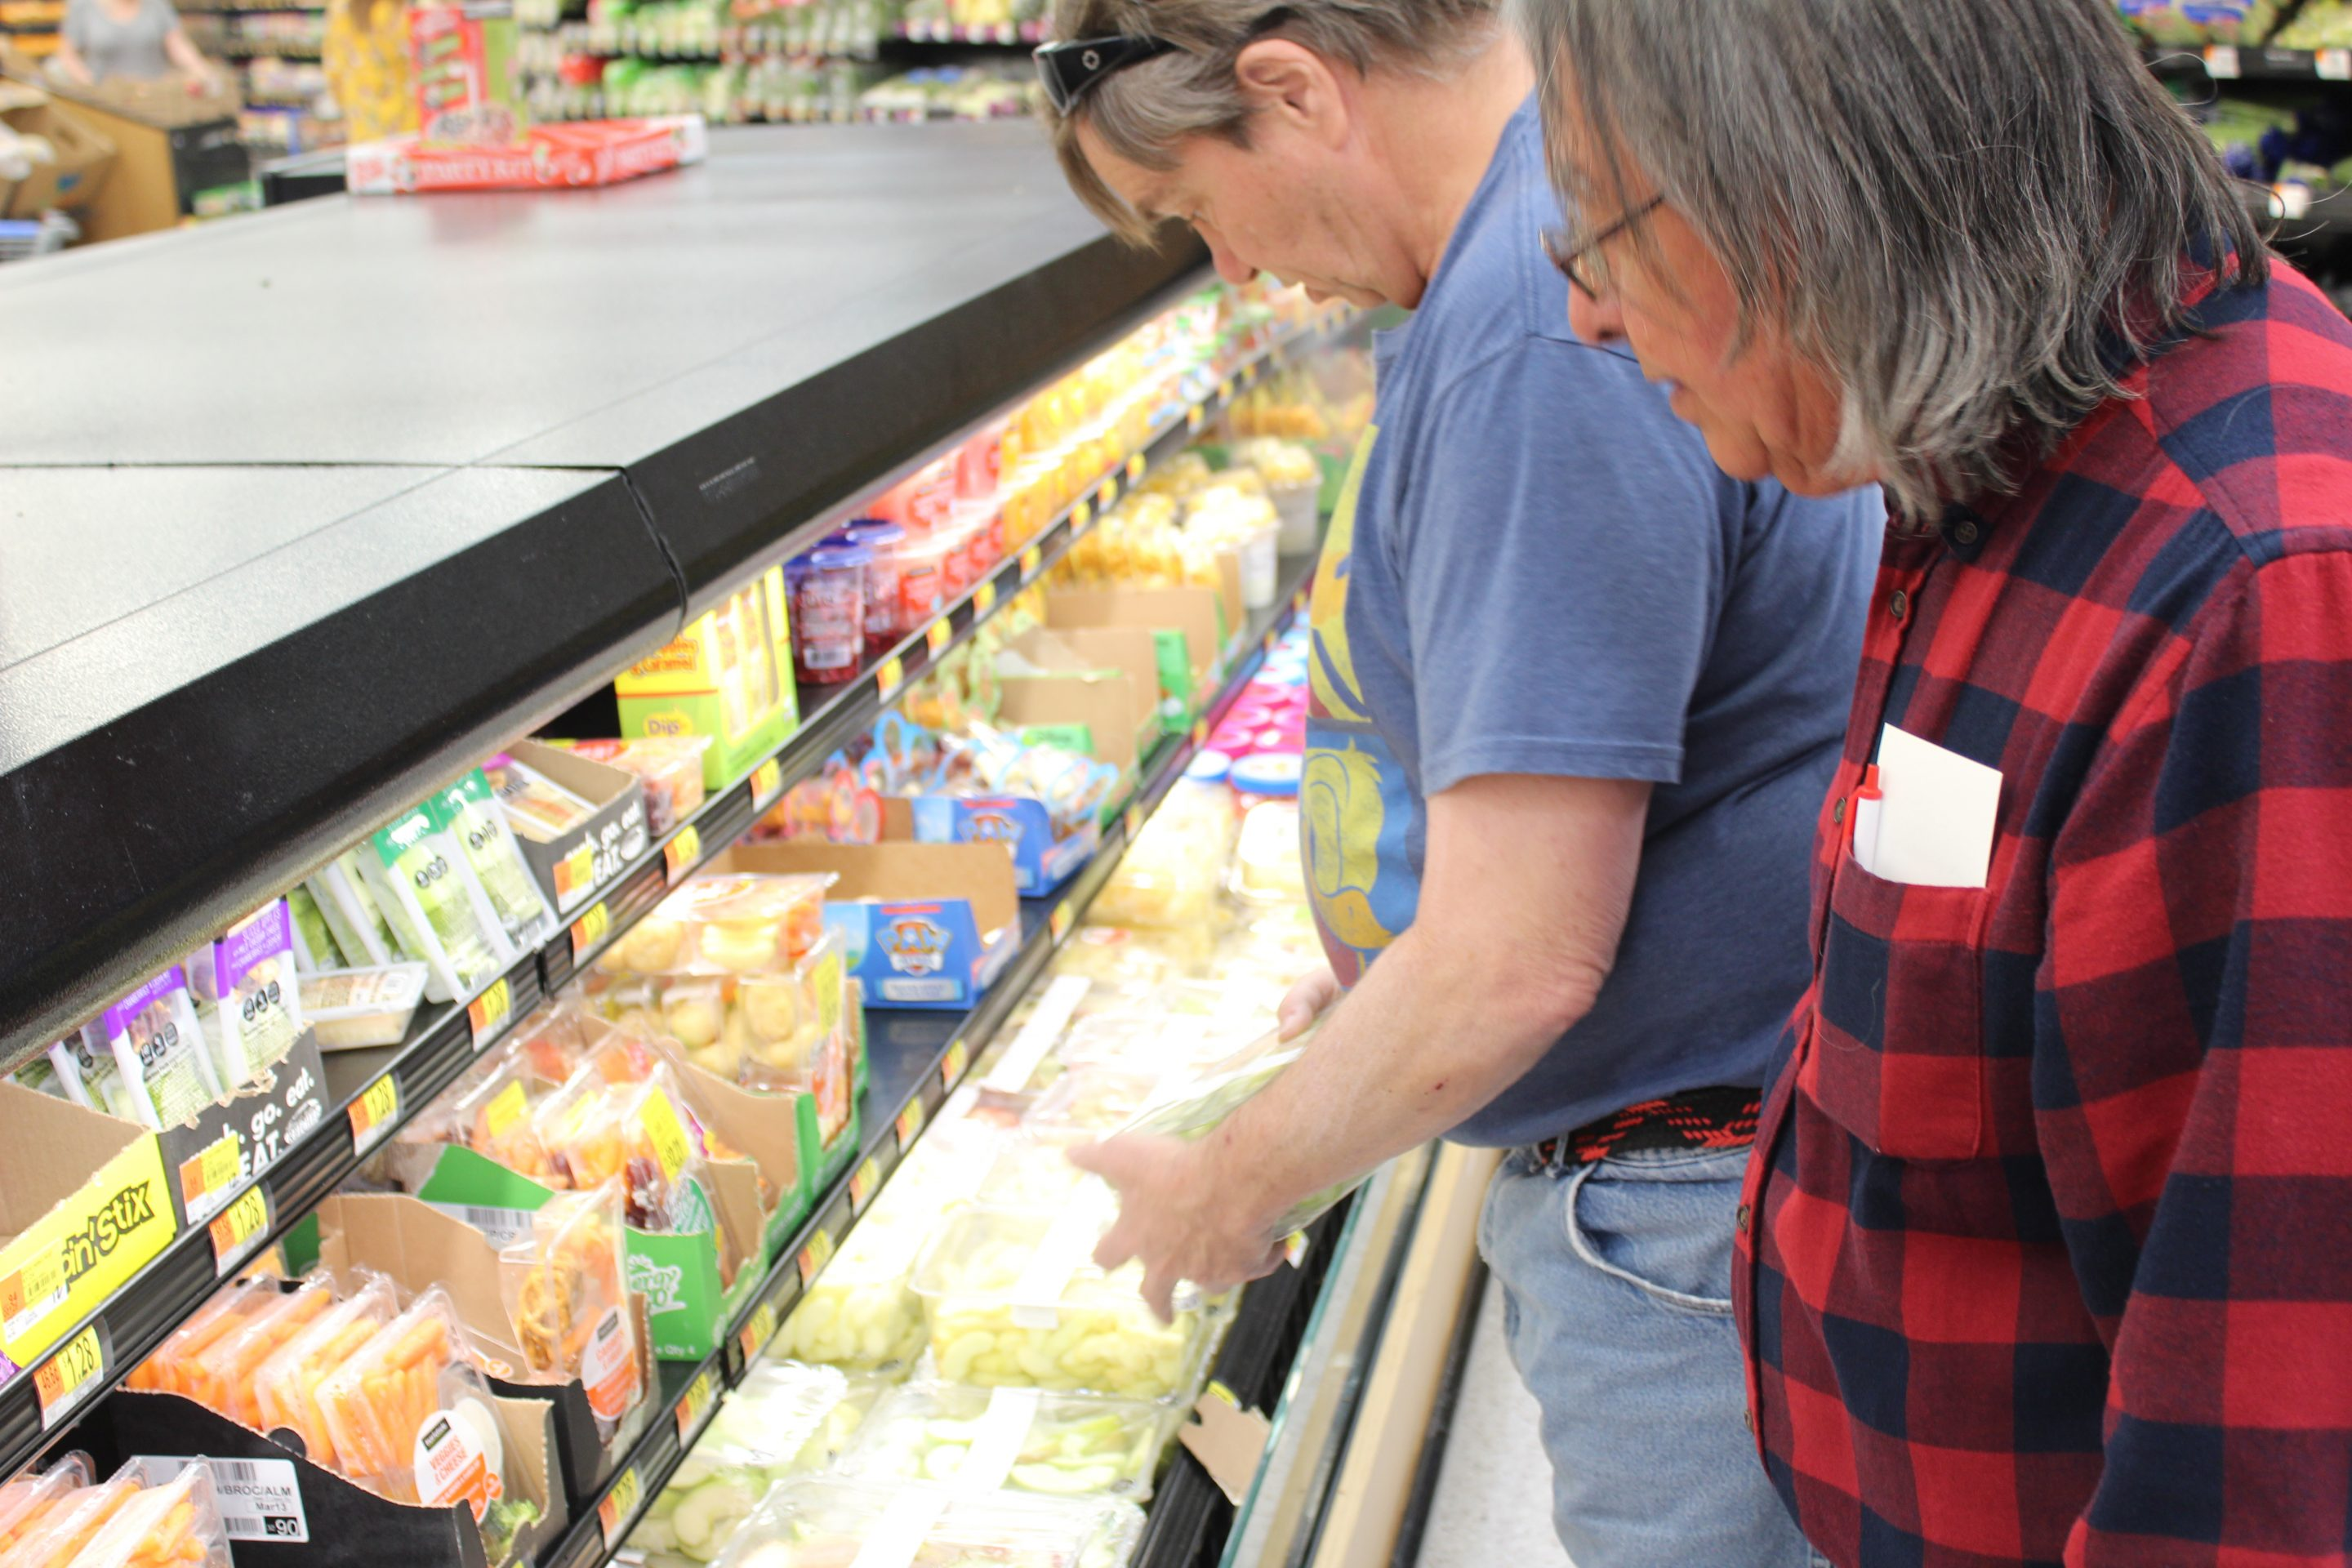 Mark and Dan both look down in a supermarket cooler to choose fruit. Mark is wearing a navy blue shirt and Dan is wearing and blue and red plaid shirt.